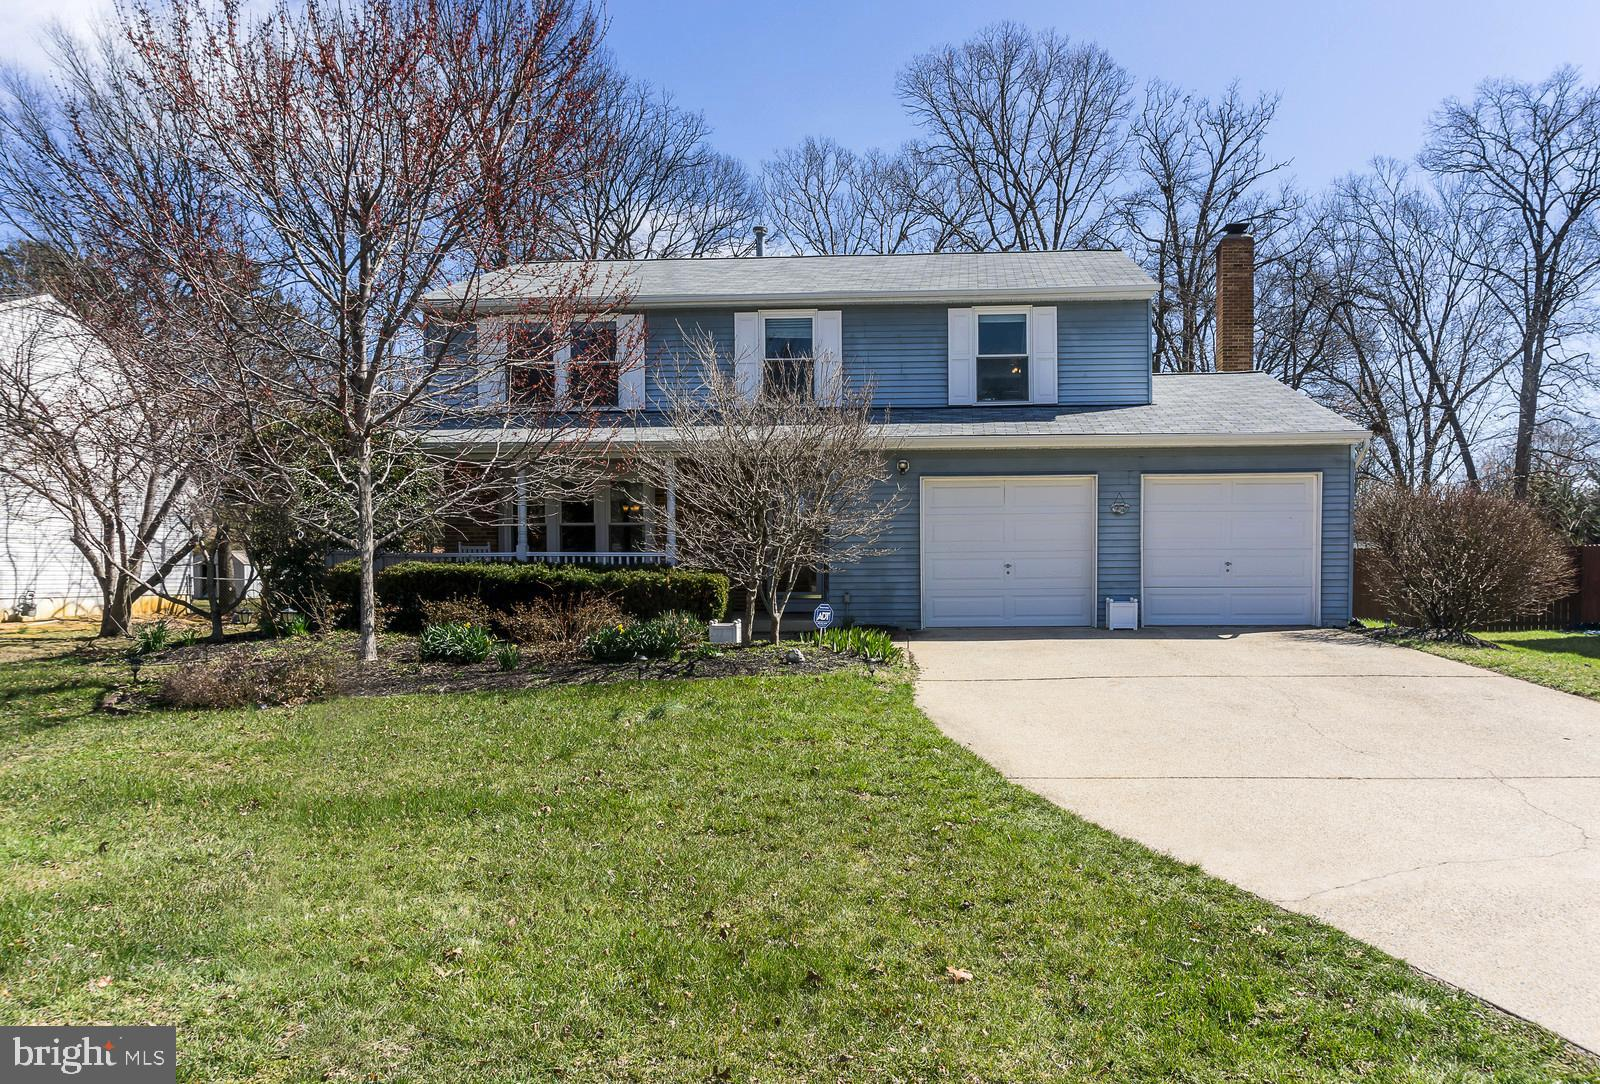 A 4 bedroom/ 3.5 bath home with 2 car garages in Springfield, VA under$600,000! This home is move in ready with fresh paint throughout, over 2768square feet of living space. Hardwood floors on in the living room, dining room and family room. The sun filled eat in kitchen has tile floors and overlooks the cozy family room with wood-burning fireplace. Family room opens to enclosed sun room porch that opens onto the flat backyard, the lot is over a quarter acre and perfect for entertaining, games or pets! The back yard also features a man cave with optional electricity perfect for hanging out! The master bedroom features a walk-in closet, updated master bath. 3 additional bedrooms are upstairs along with a hall bath. The basement features 3 separate areas perfect for work out room, playroom, game room, TV room and so much more! Plus tons of storage in laundry room- don~t miss this home!